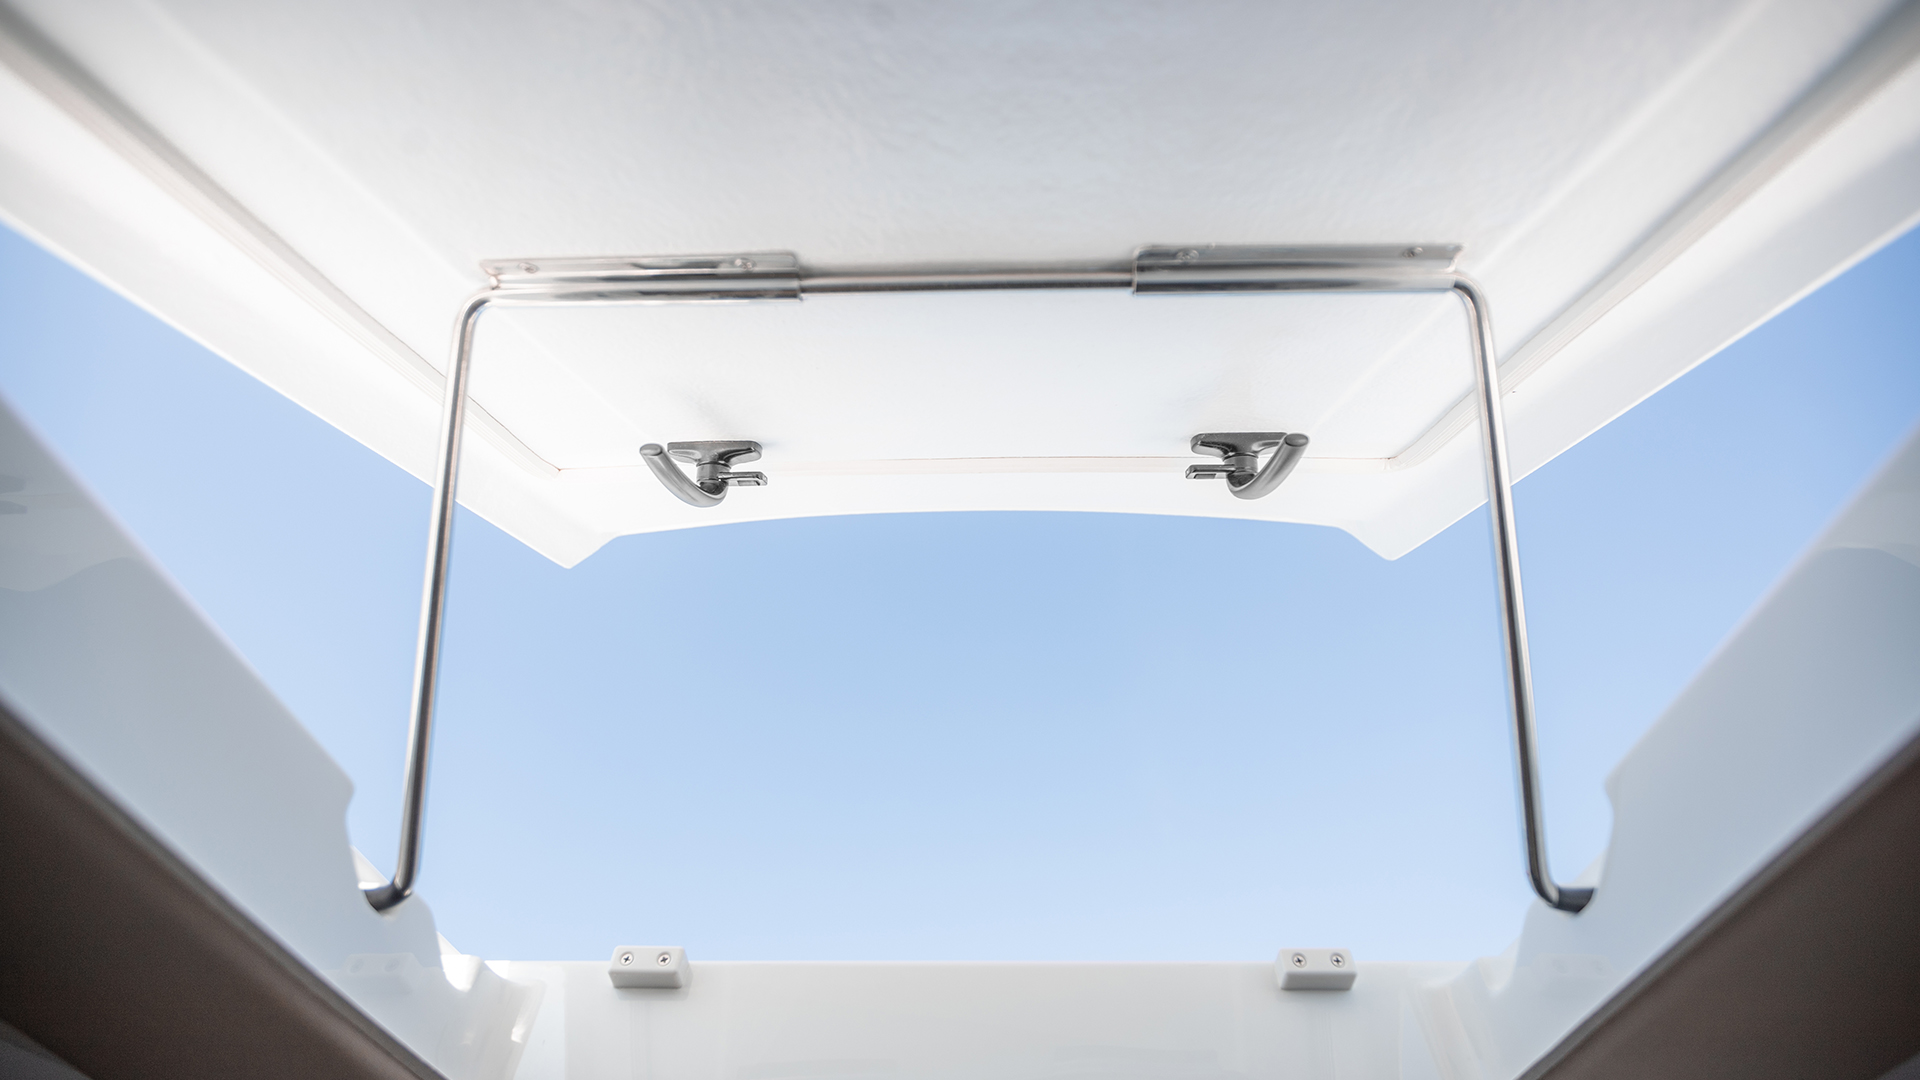 Noblesse 720 cabin roof hatch